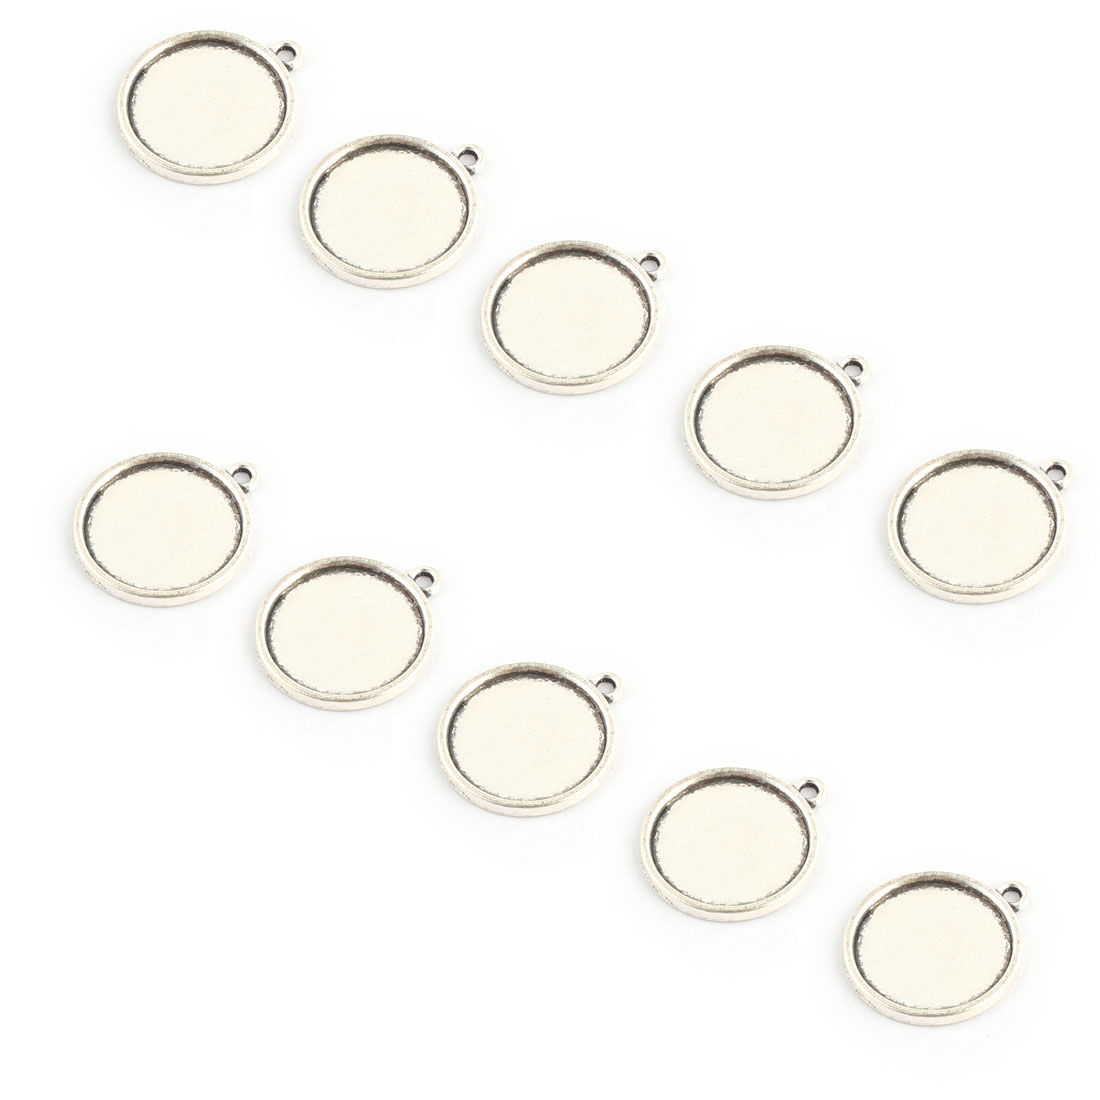 Household Copper Alloy DIY Retro Style Round Pendant Trays Silver Tone 18mm Inner Dia 10 Pcs